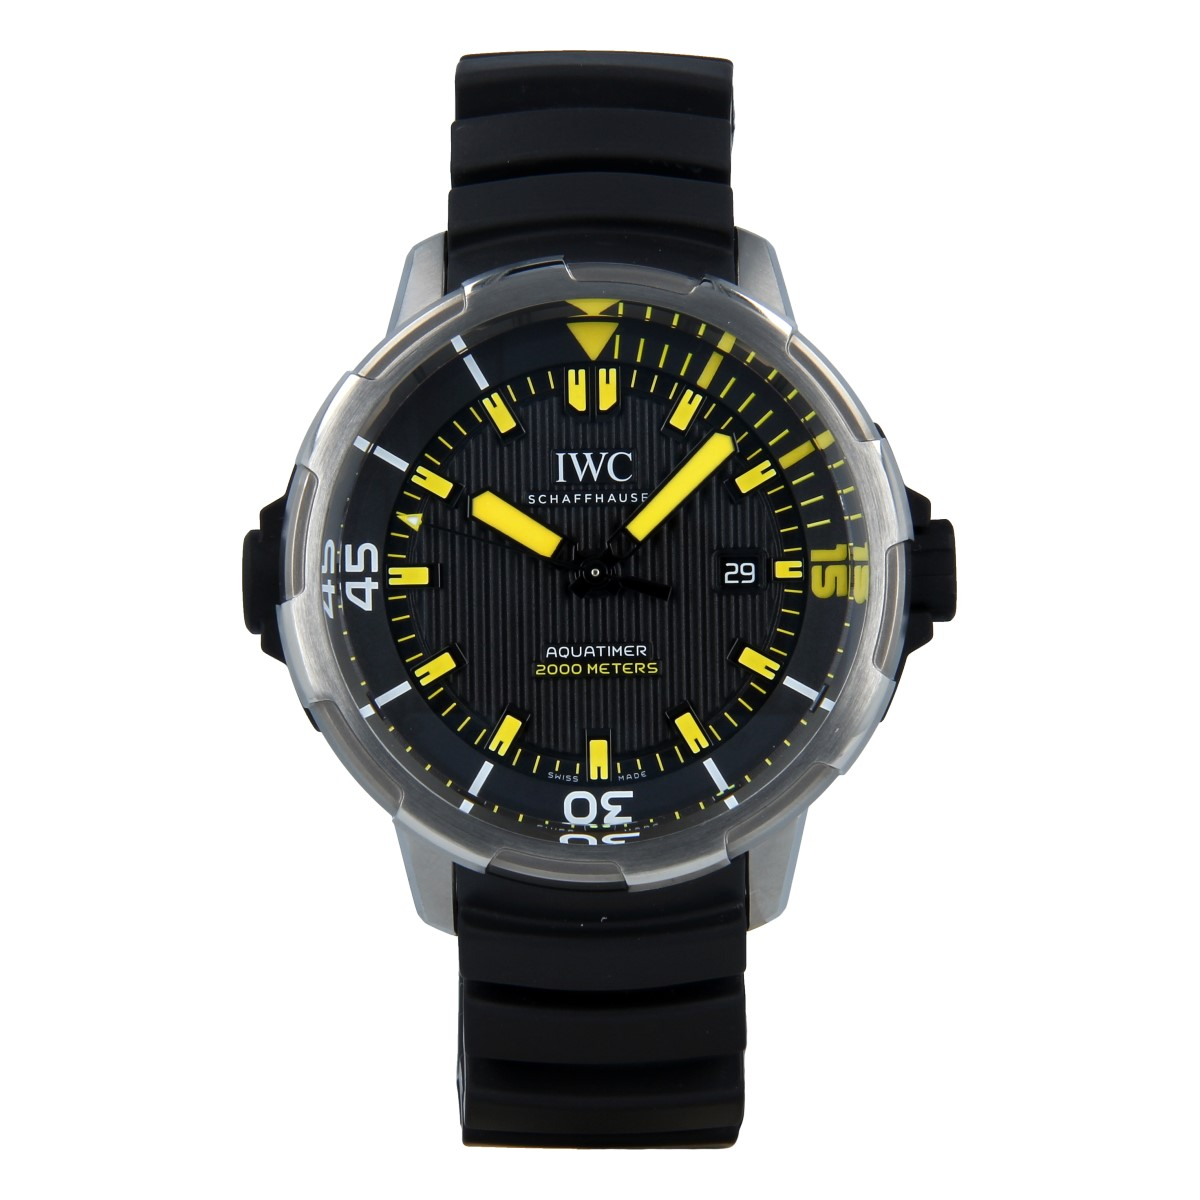 574ec65d0bb4 IWC Aquatimer Automatic 2000